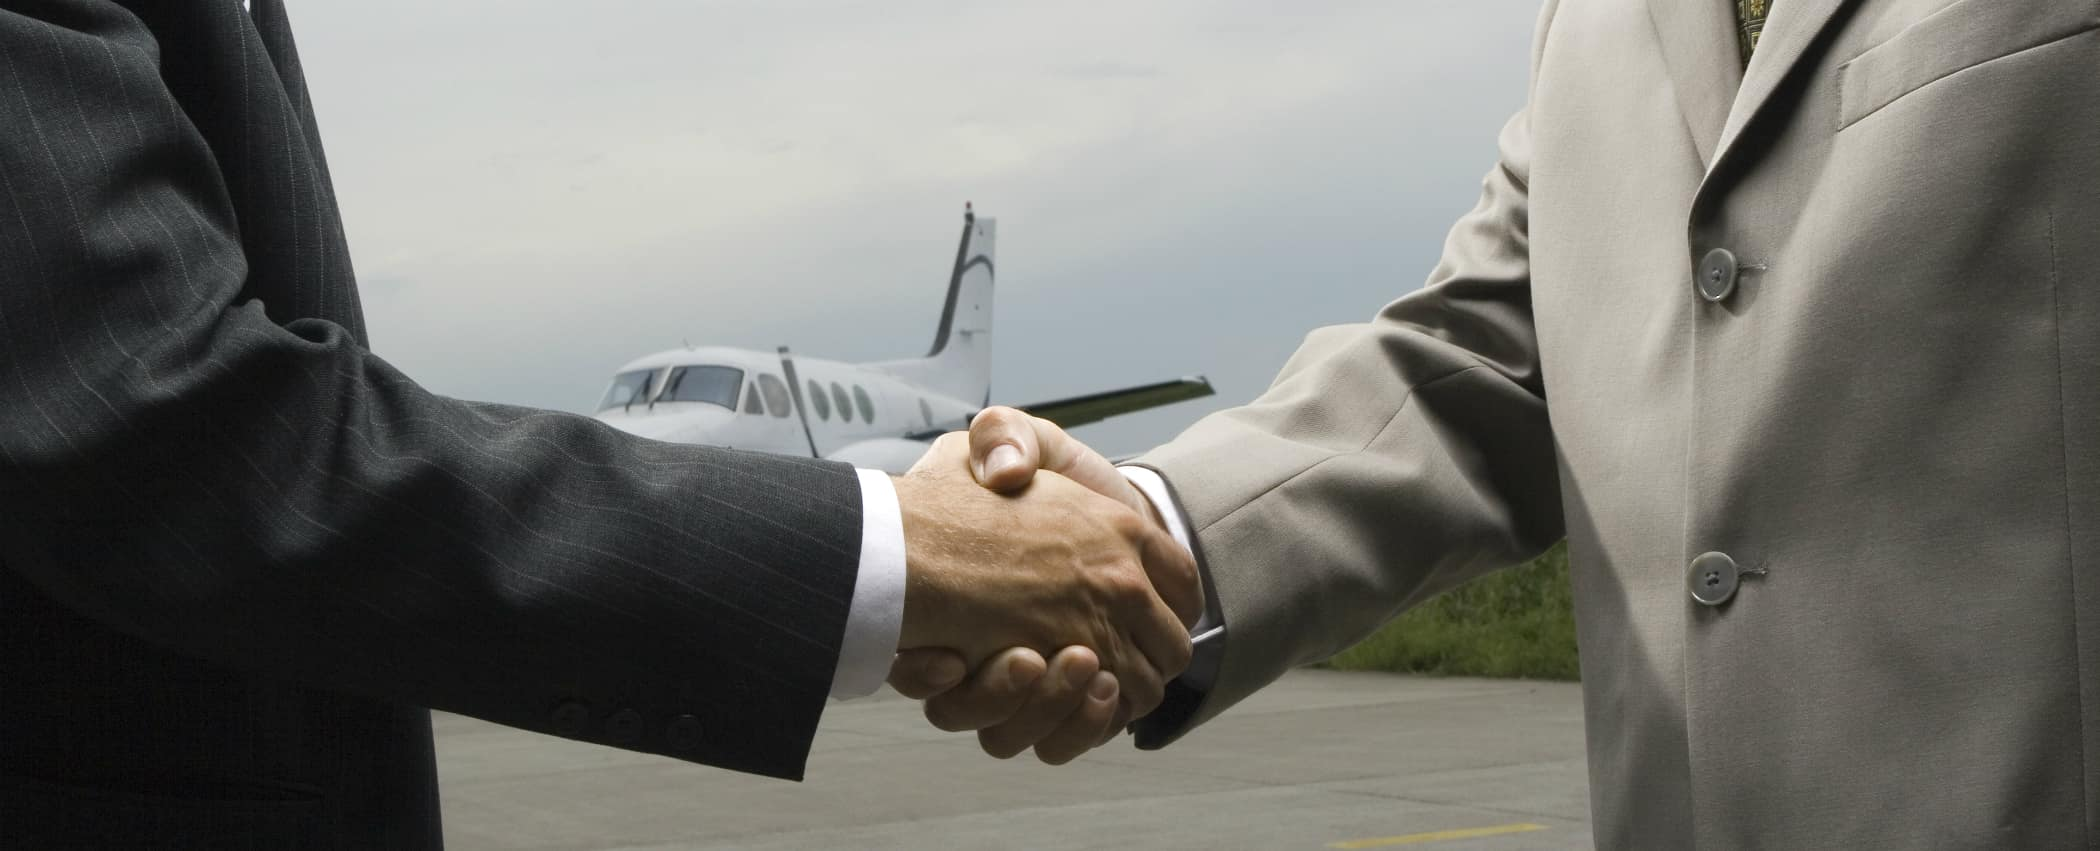 two men shaking hands at an airport